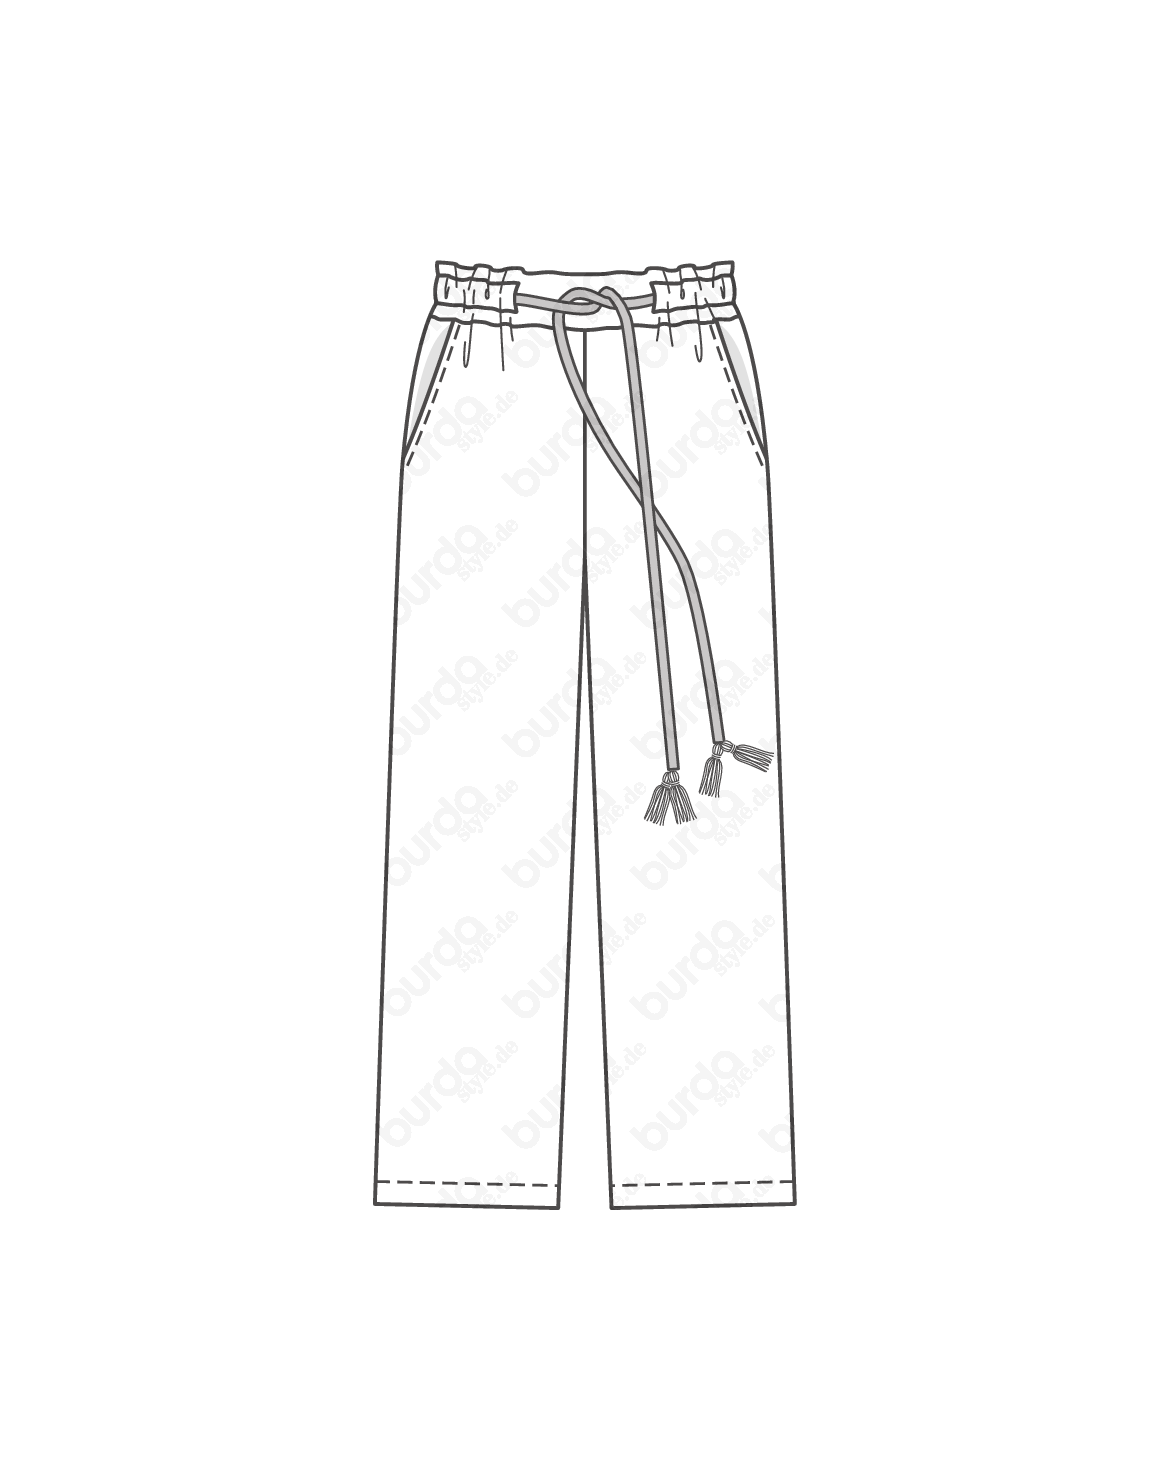 Drawing shorts folded pants. Schnittmuster schlupfhose f s